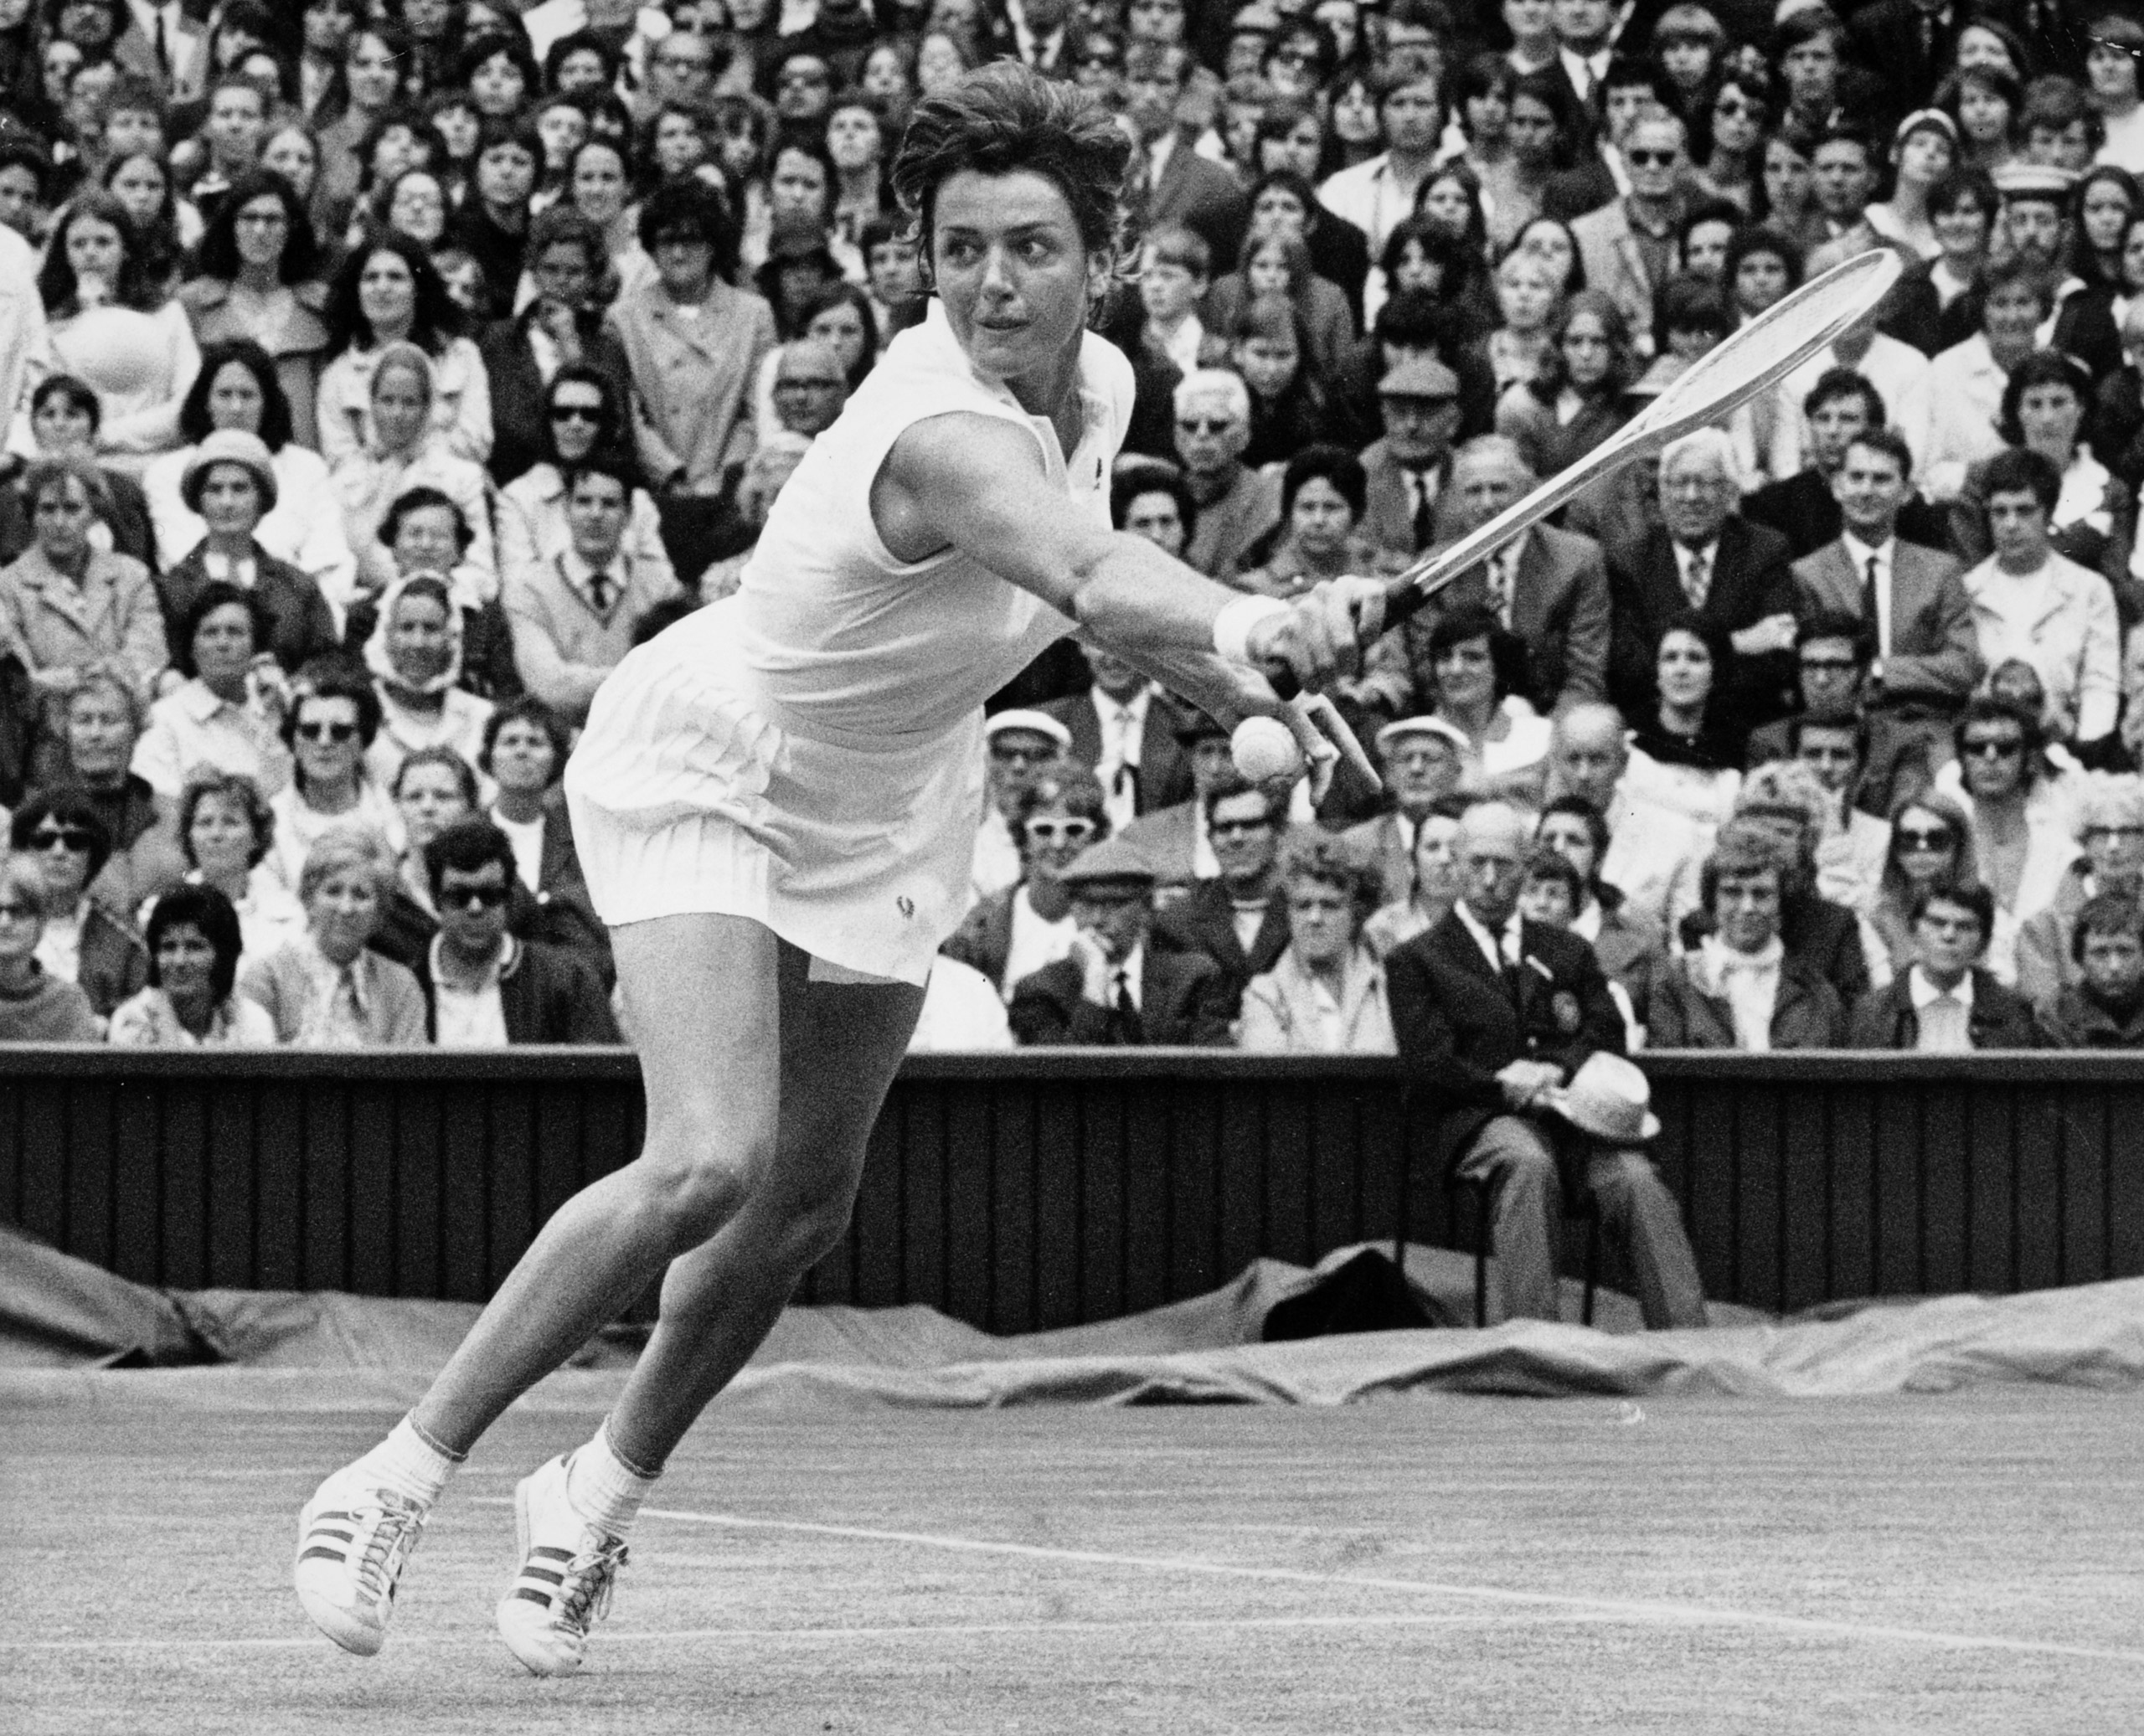 Margaret Court of Australia in action at Wimbledon on June 30, 1970.